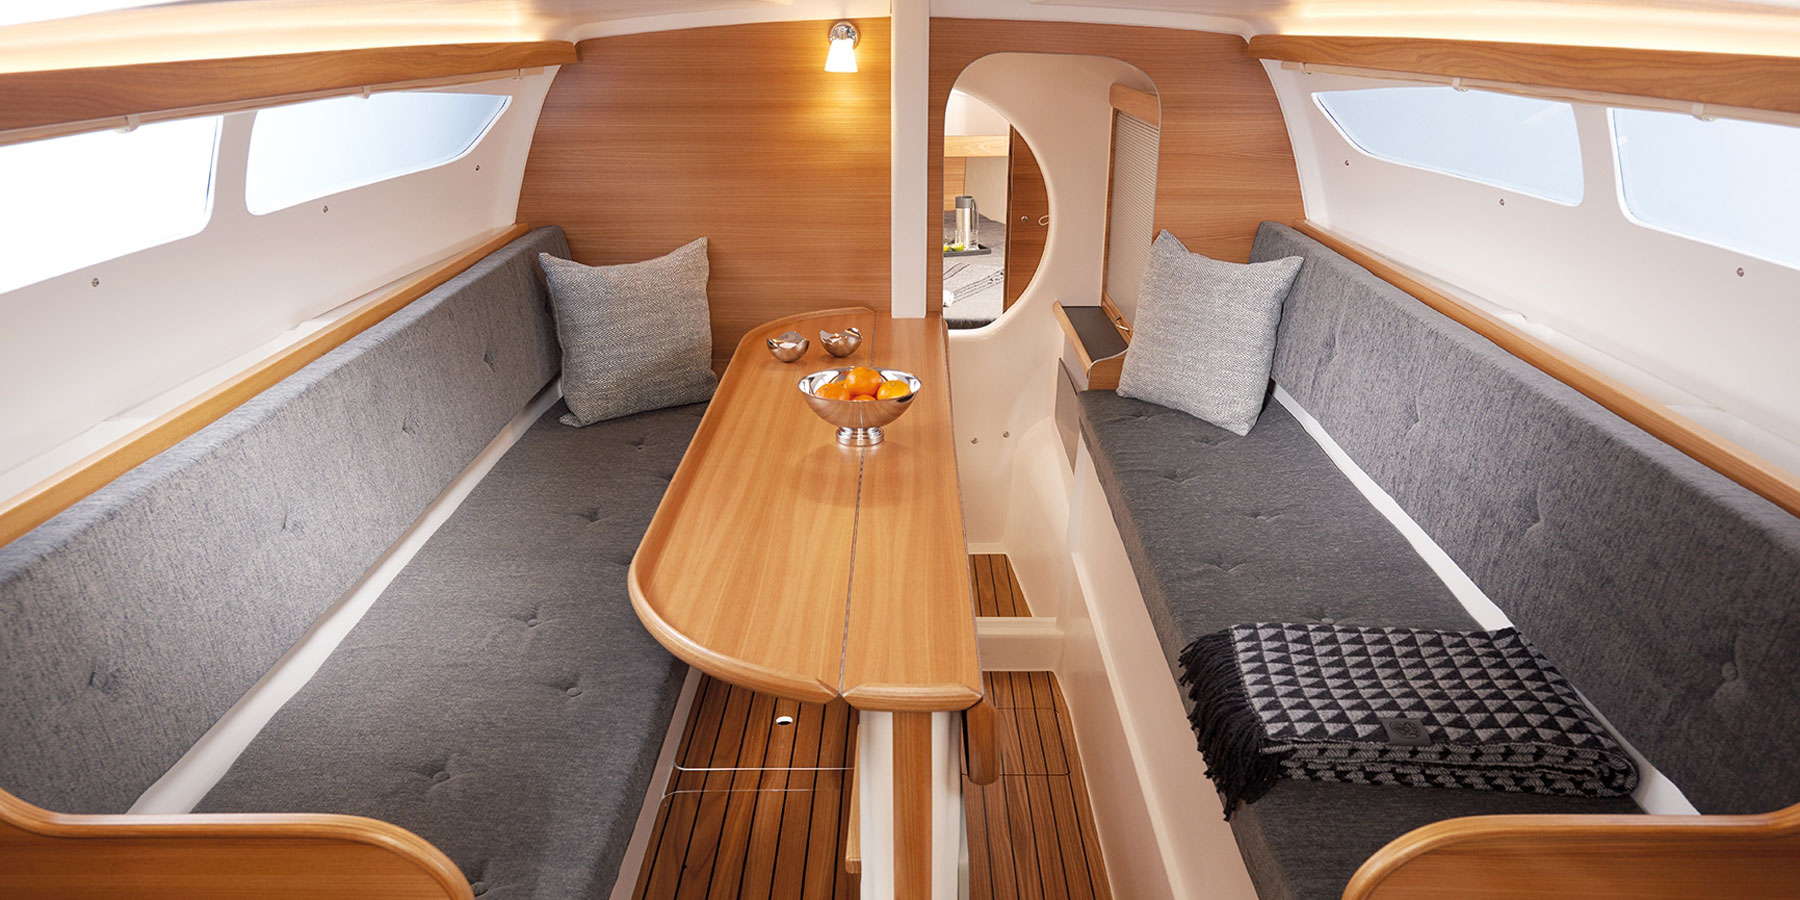 Dragonfly 28 trimaran main cabin looking forward